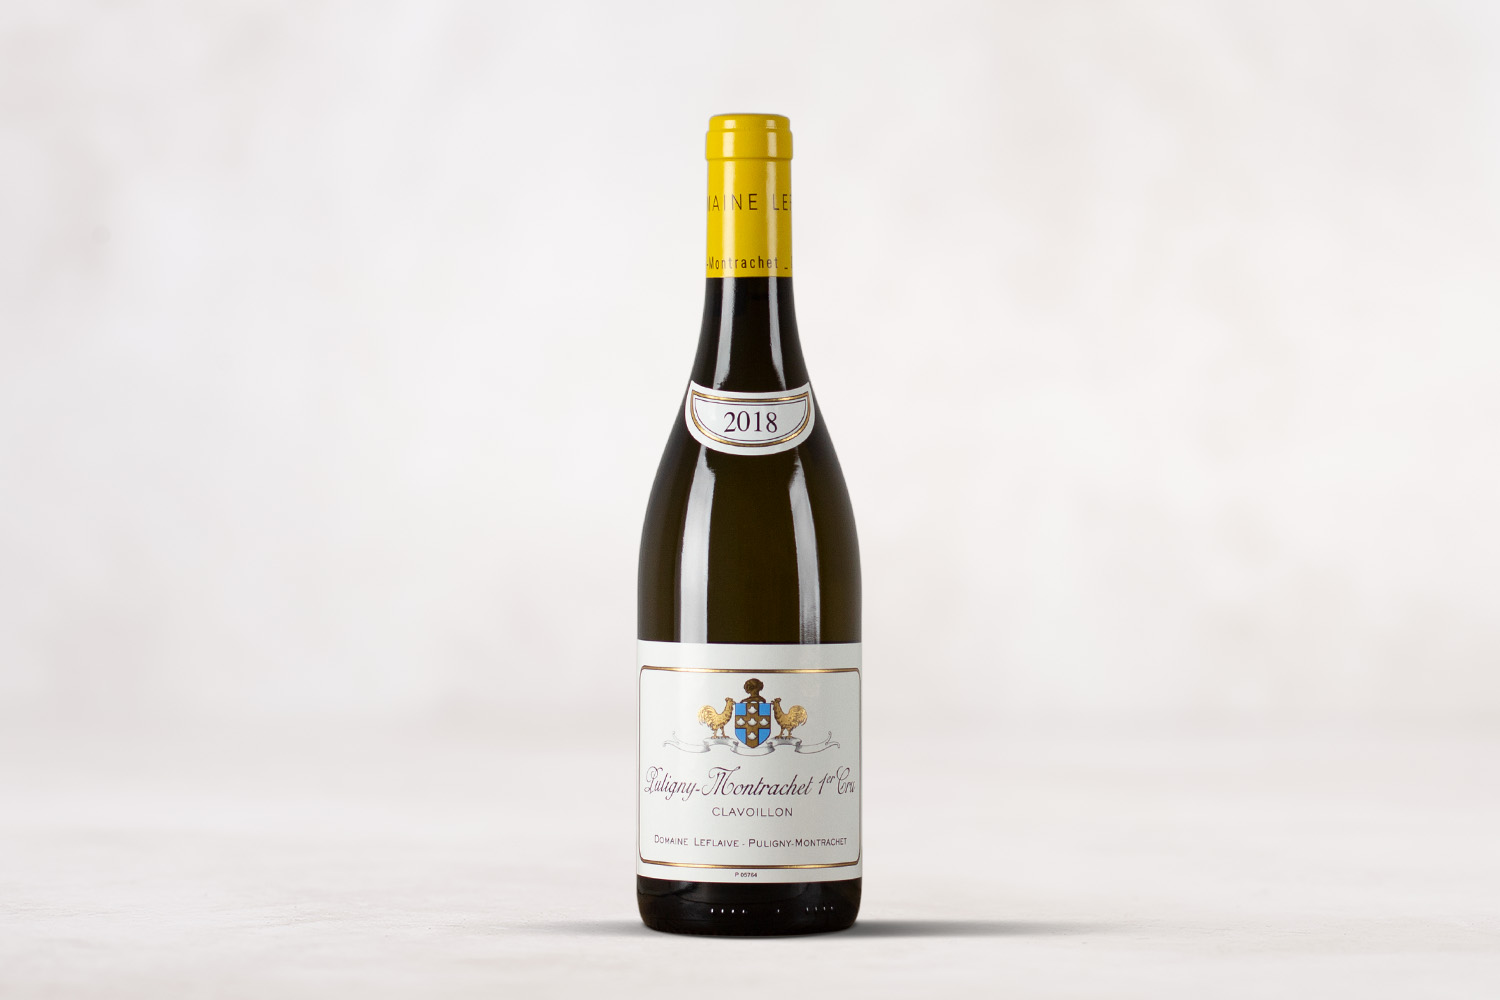 Domaine Leflaive, Puligny-Montrachet 1er Cru, Clavoillon Burgundy, France 2018 - SommSelect